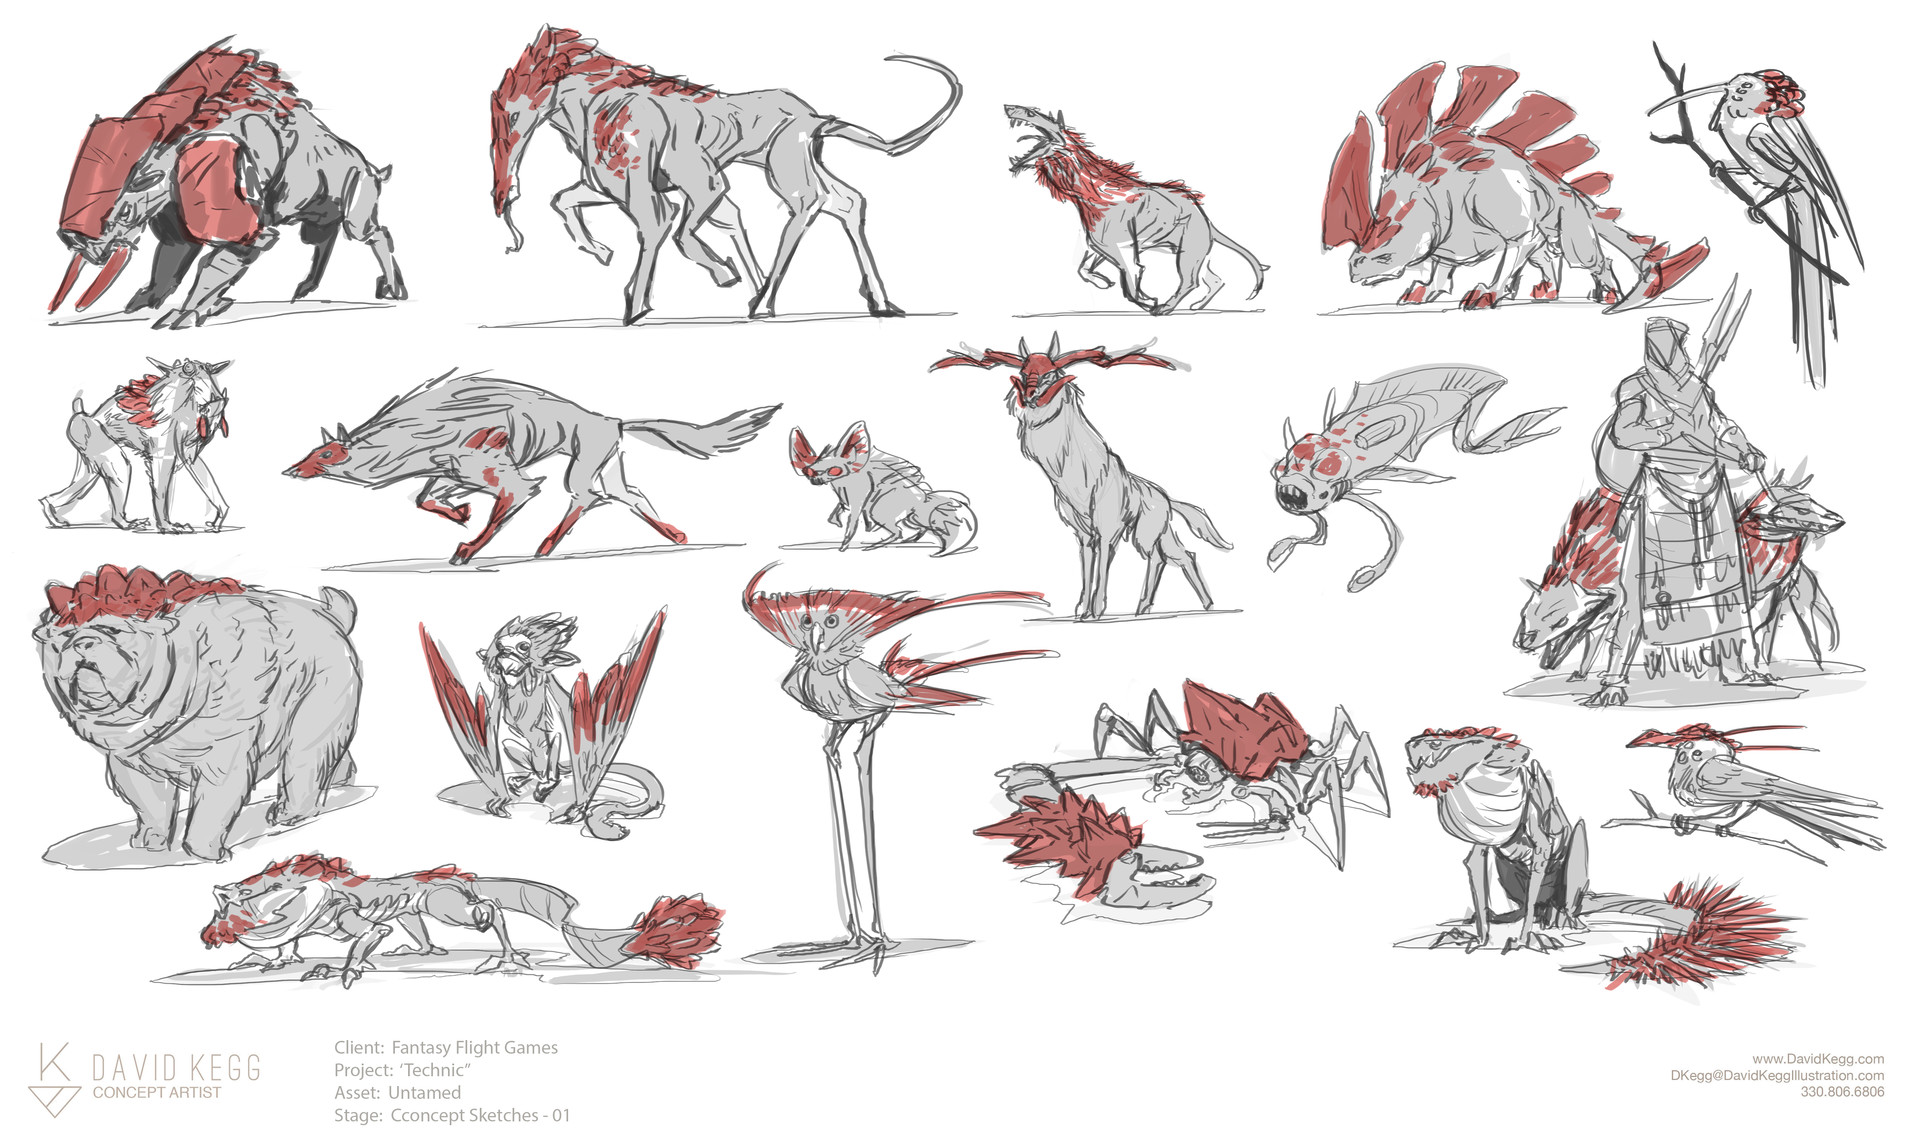 David kegg kegg ffgtechnic untamed conceptsketches 01